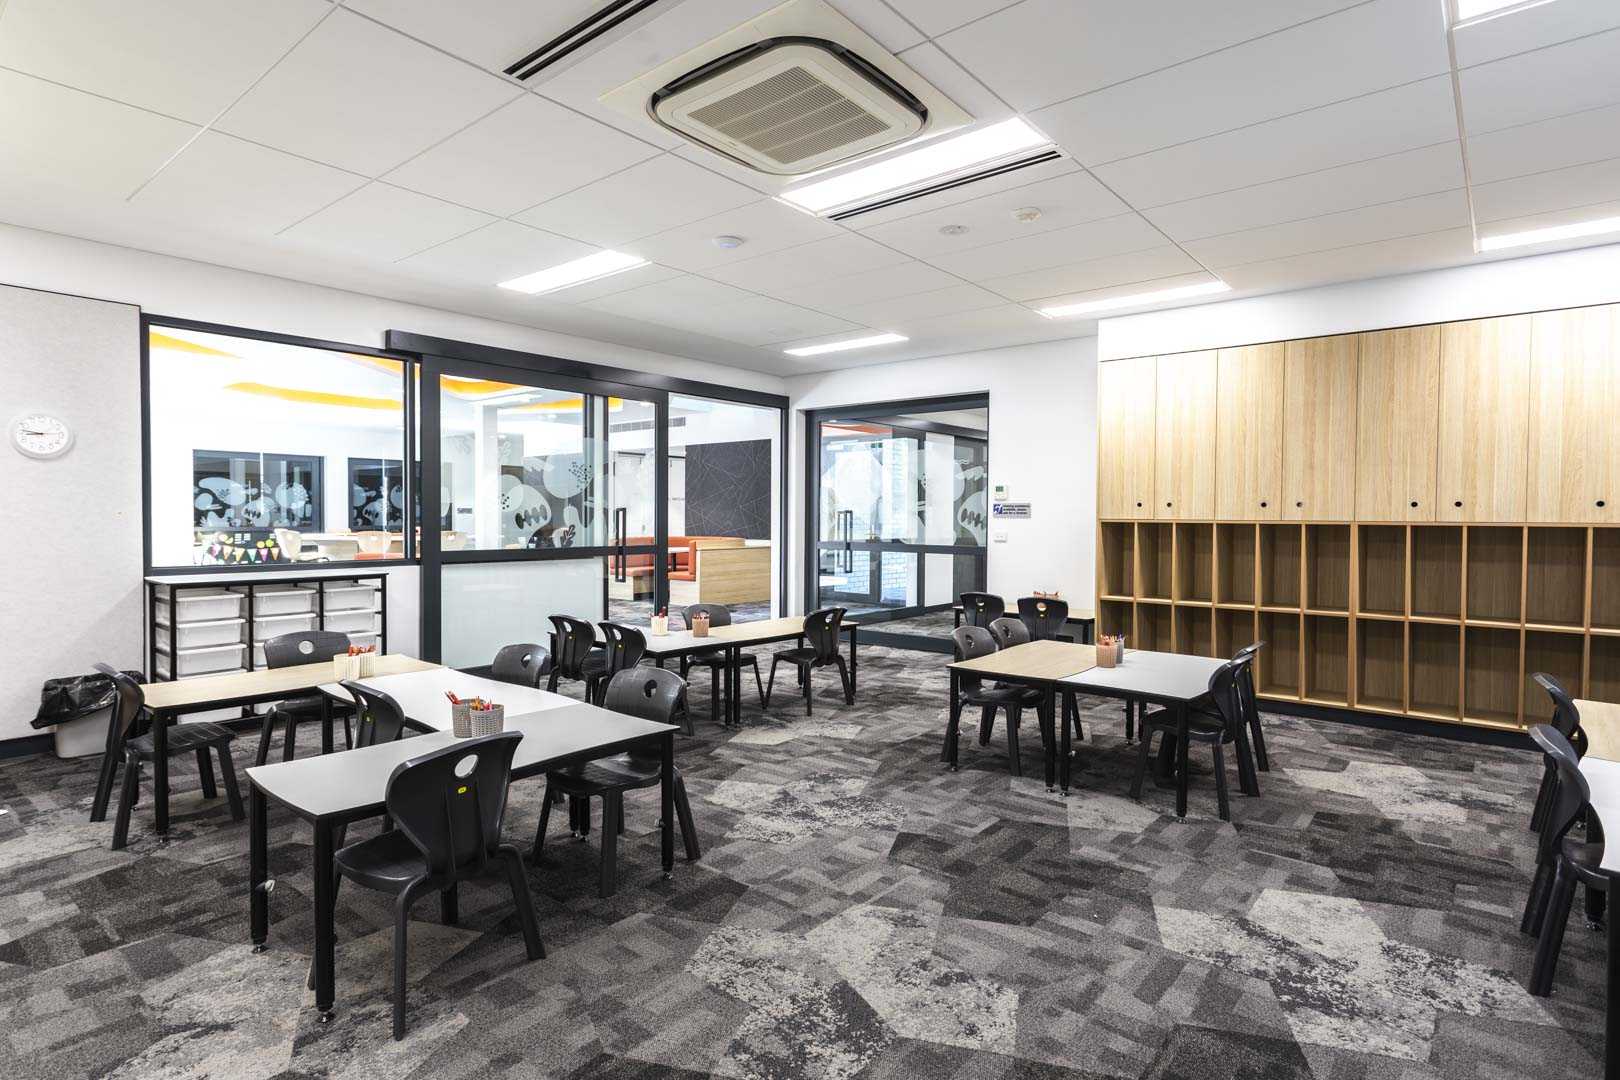 image of a flexible learning area with glazed acoustic sliders